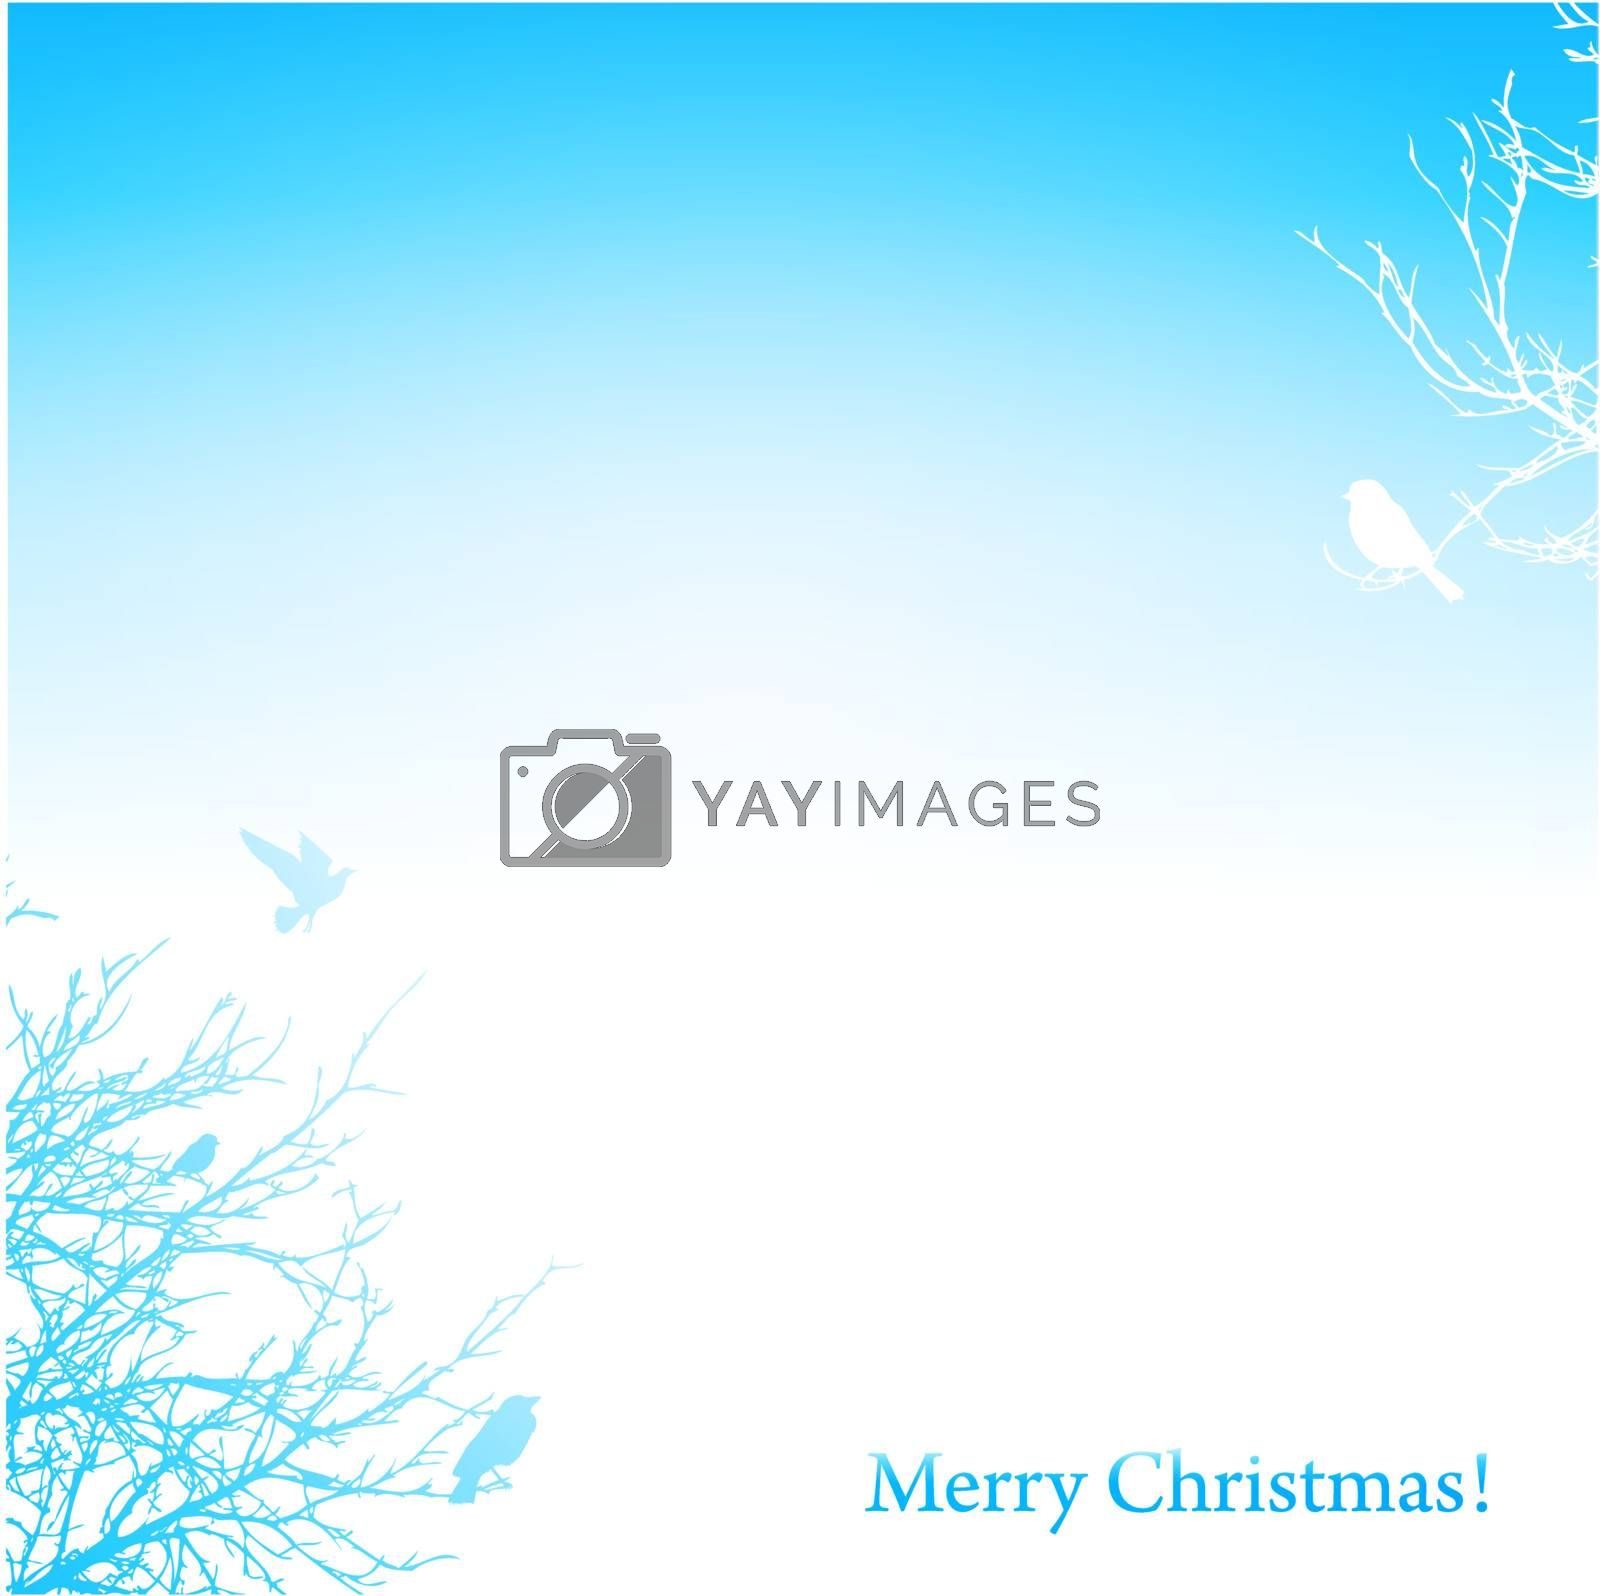 Christmas background with silhouette of trees and birds, copyspace